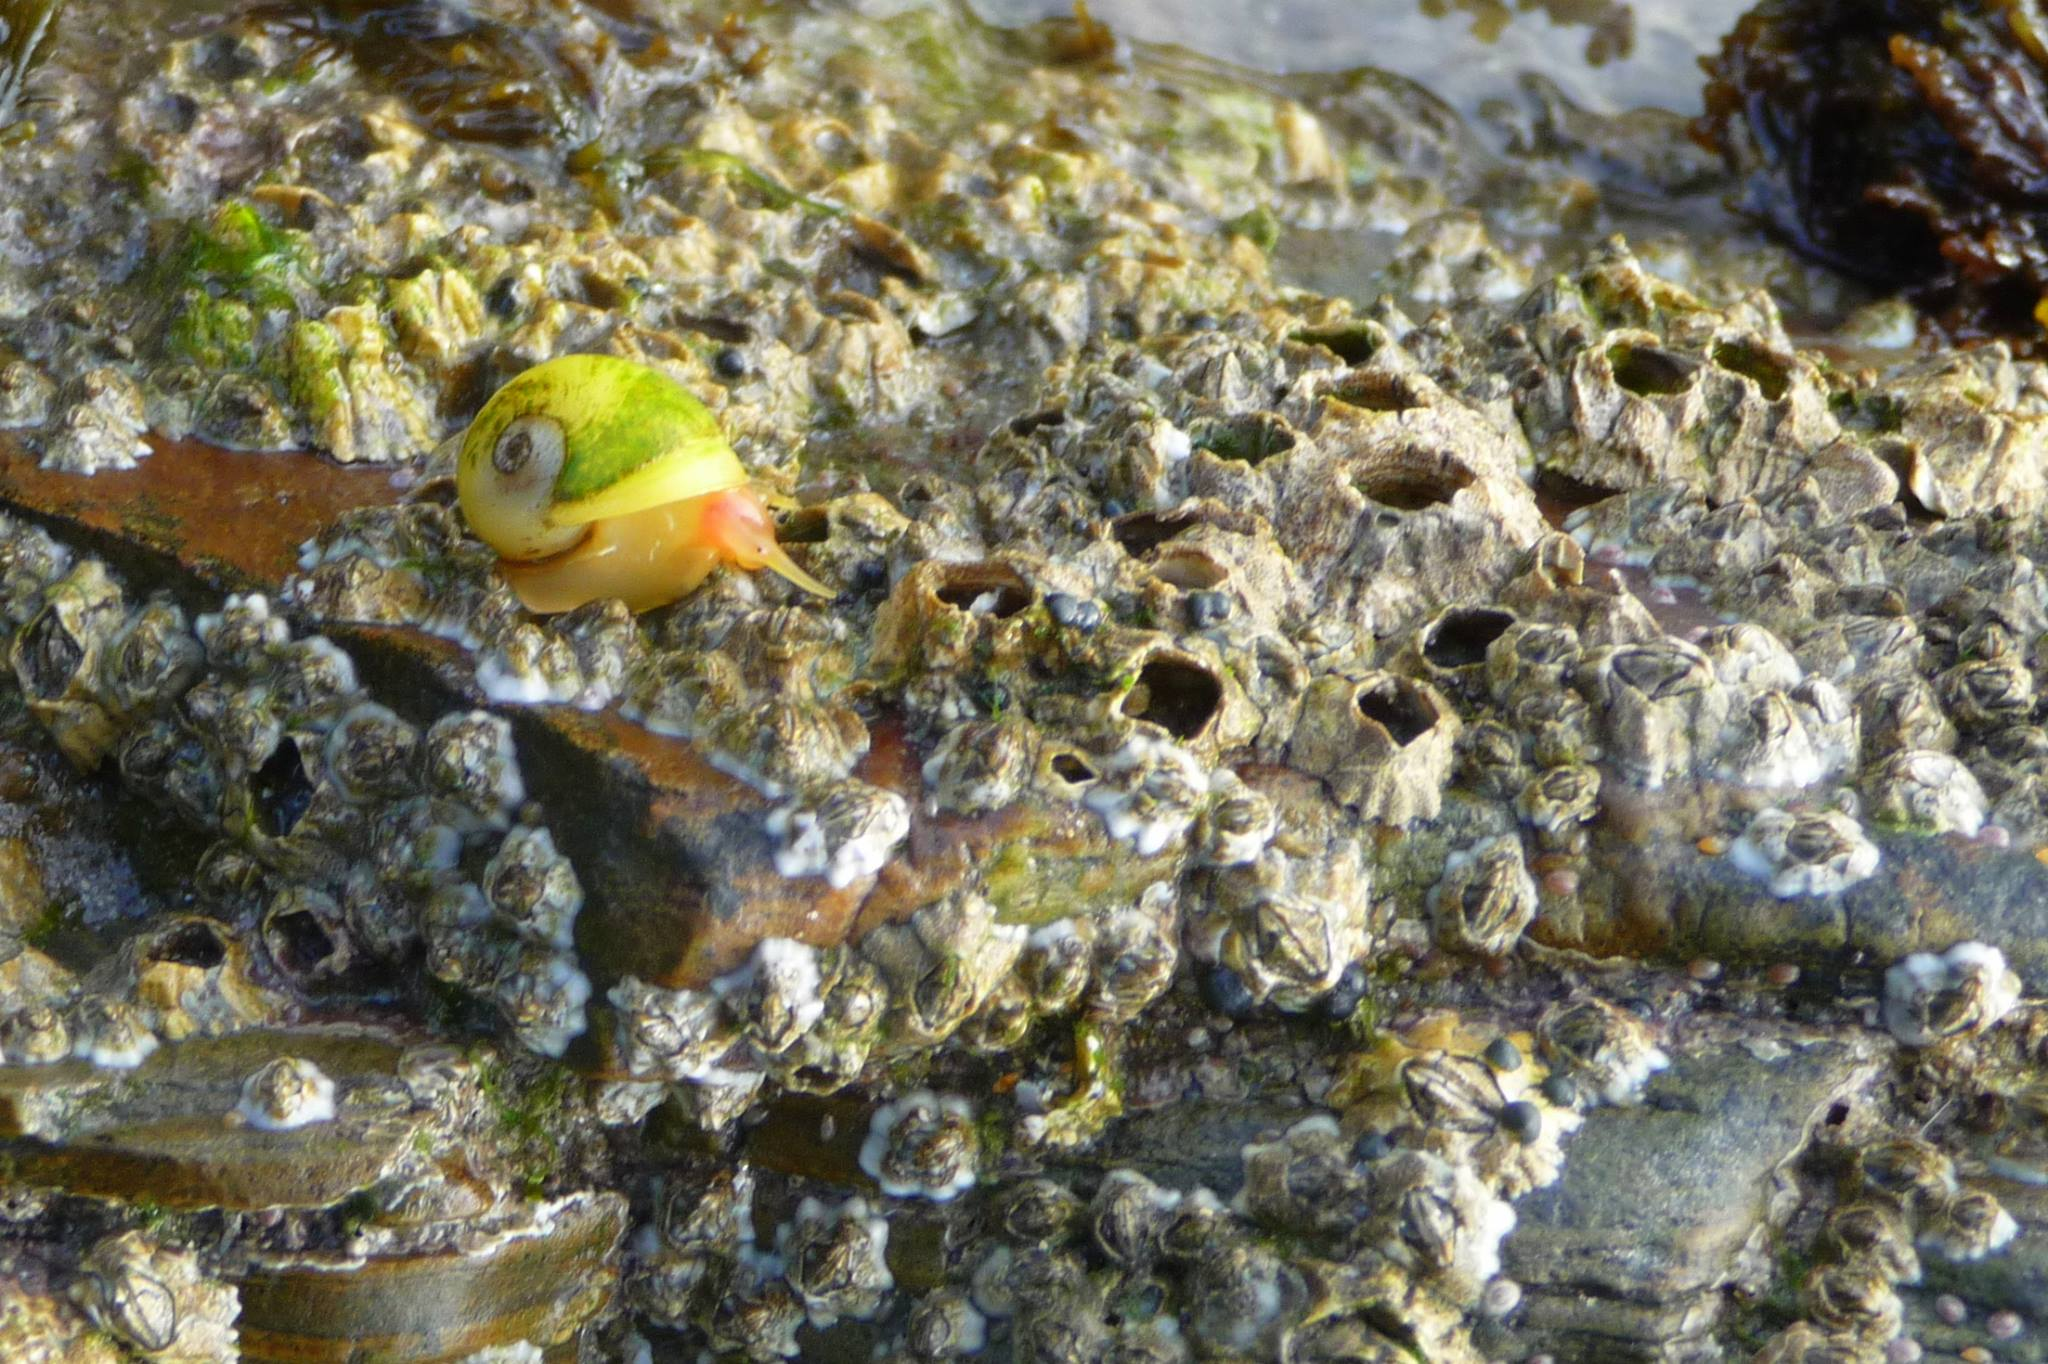 A brightly coloured snail on a barnacle covered rock